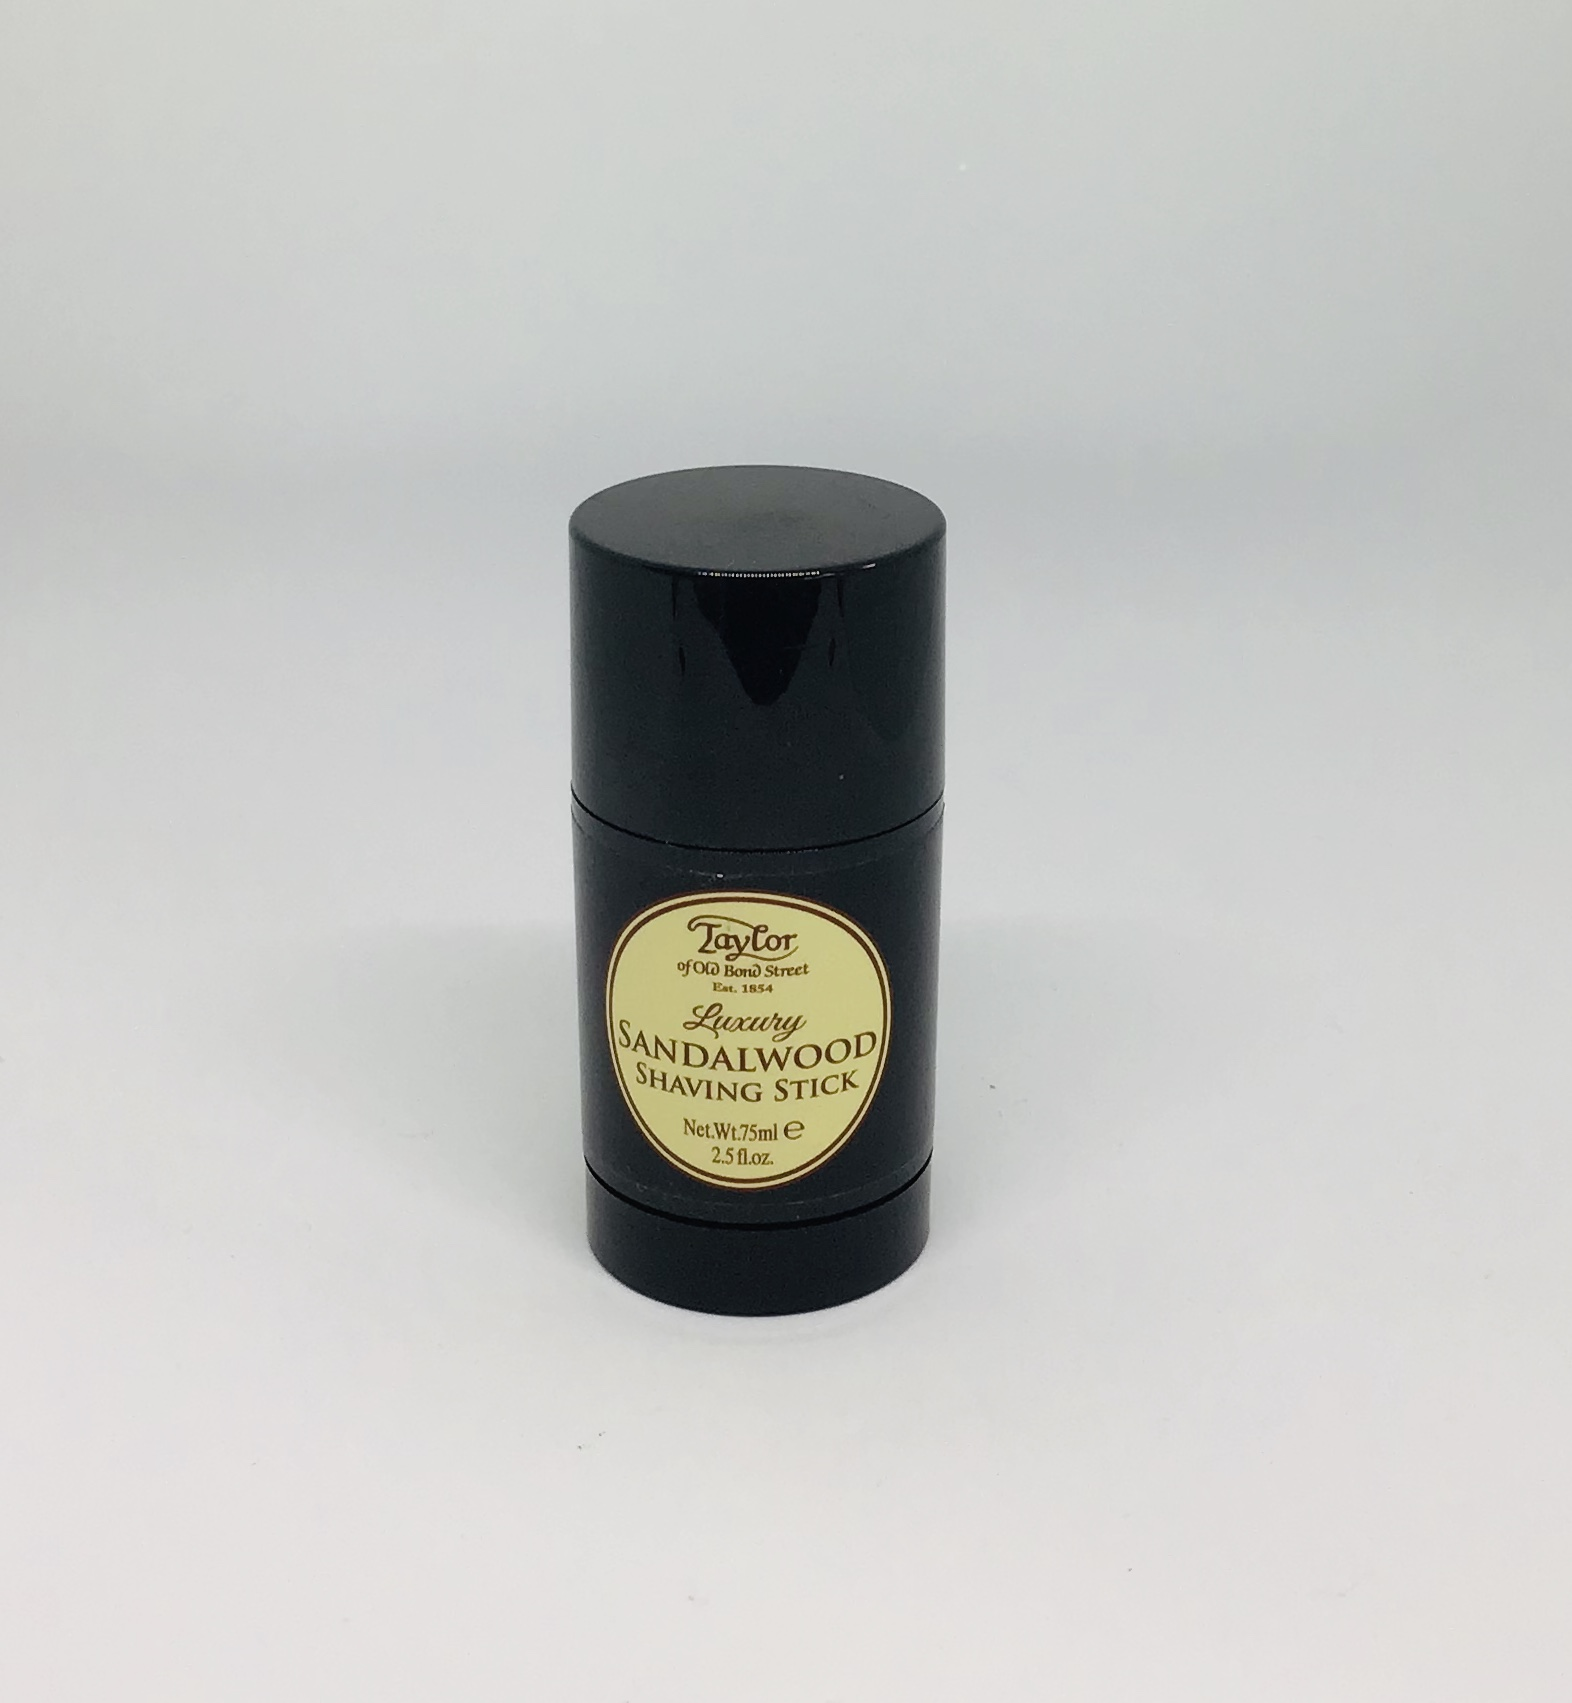 Taylor's sandalwood shaving stick